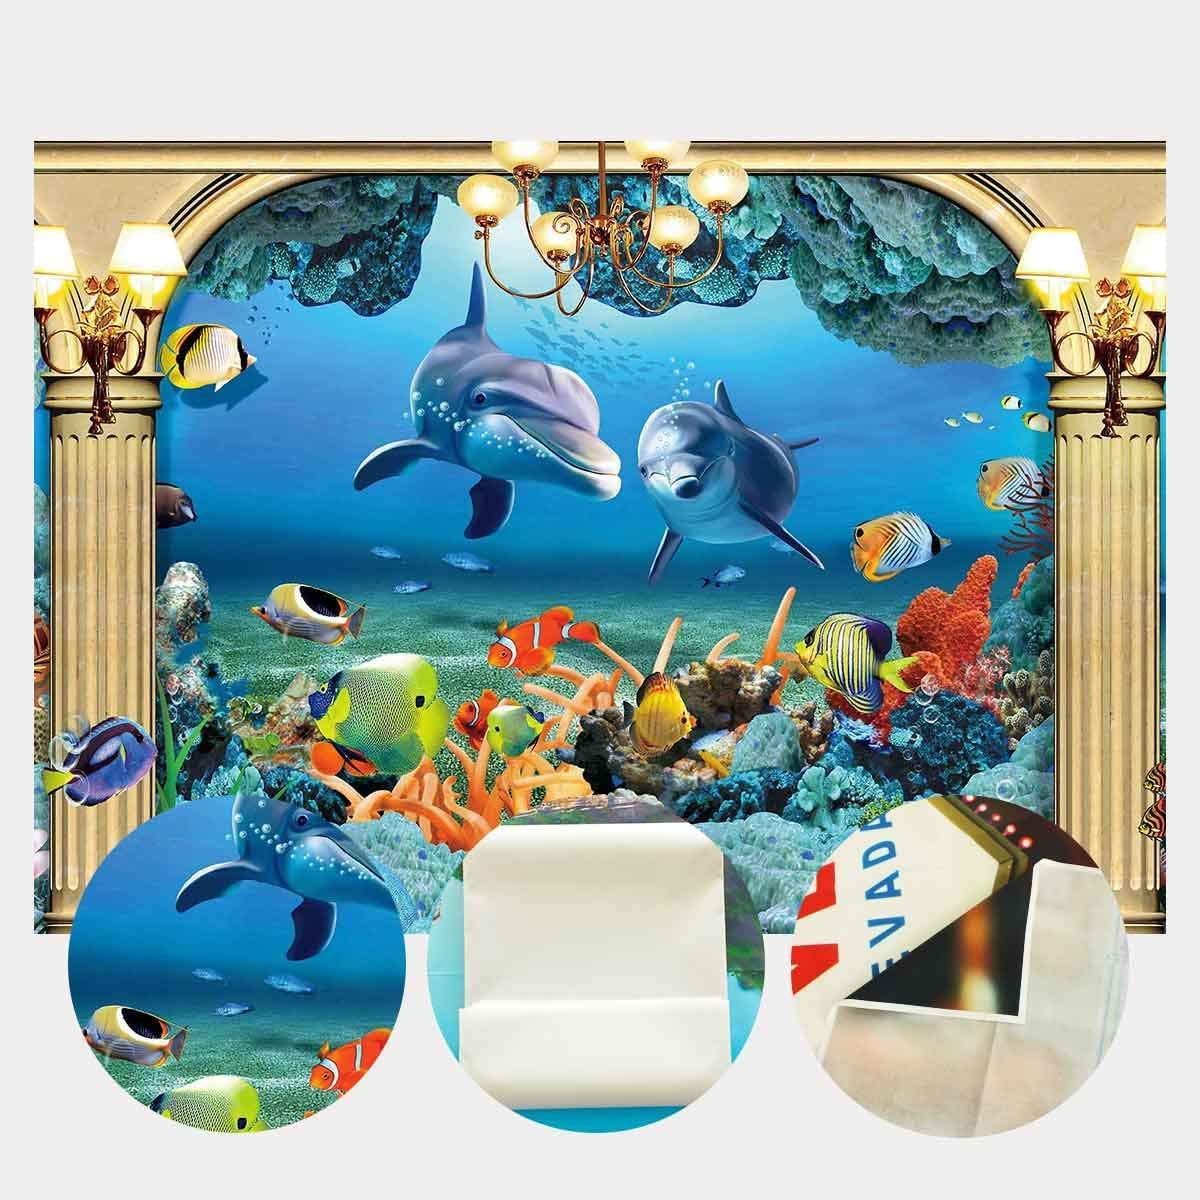 SZZWY 7x5ft Underwater World Backdrop Tropical Fish Coral Sea Ocean World Photography Backdrop Photo Photography Background Props Studio Indoor Decorations LYP160